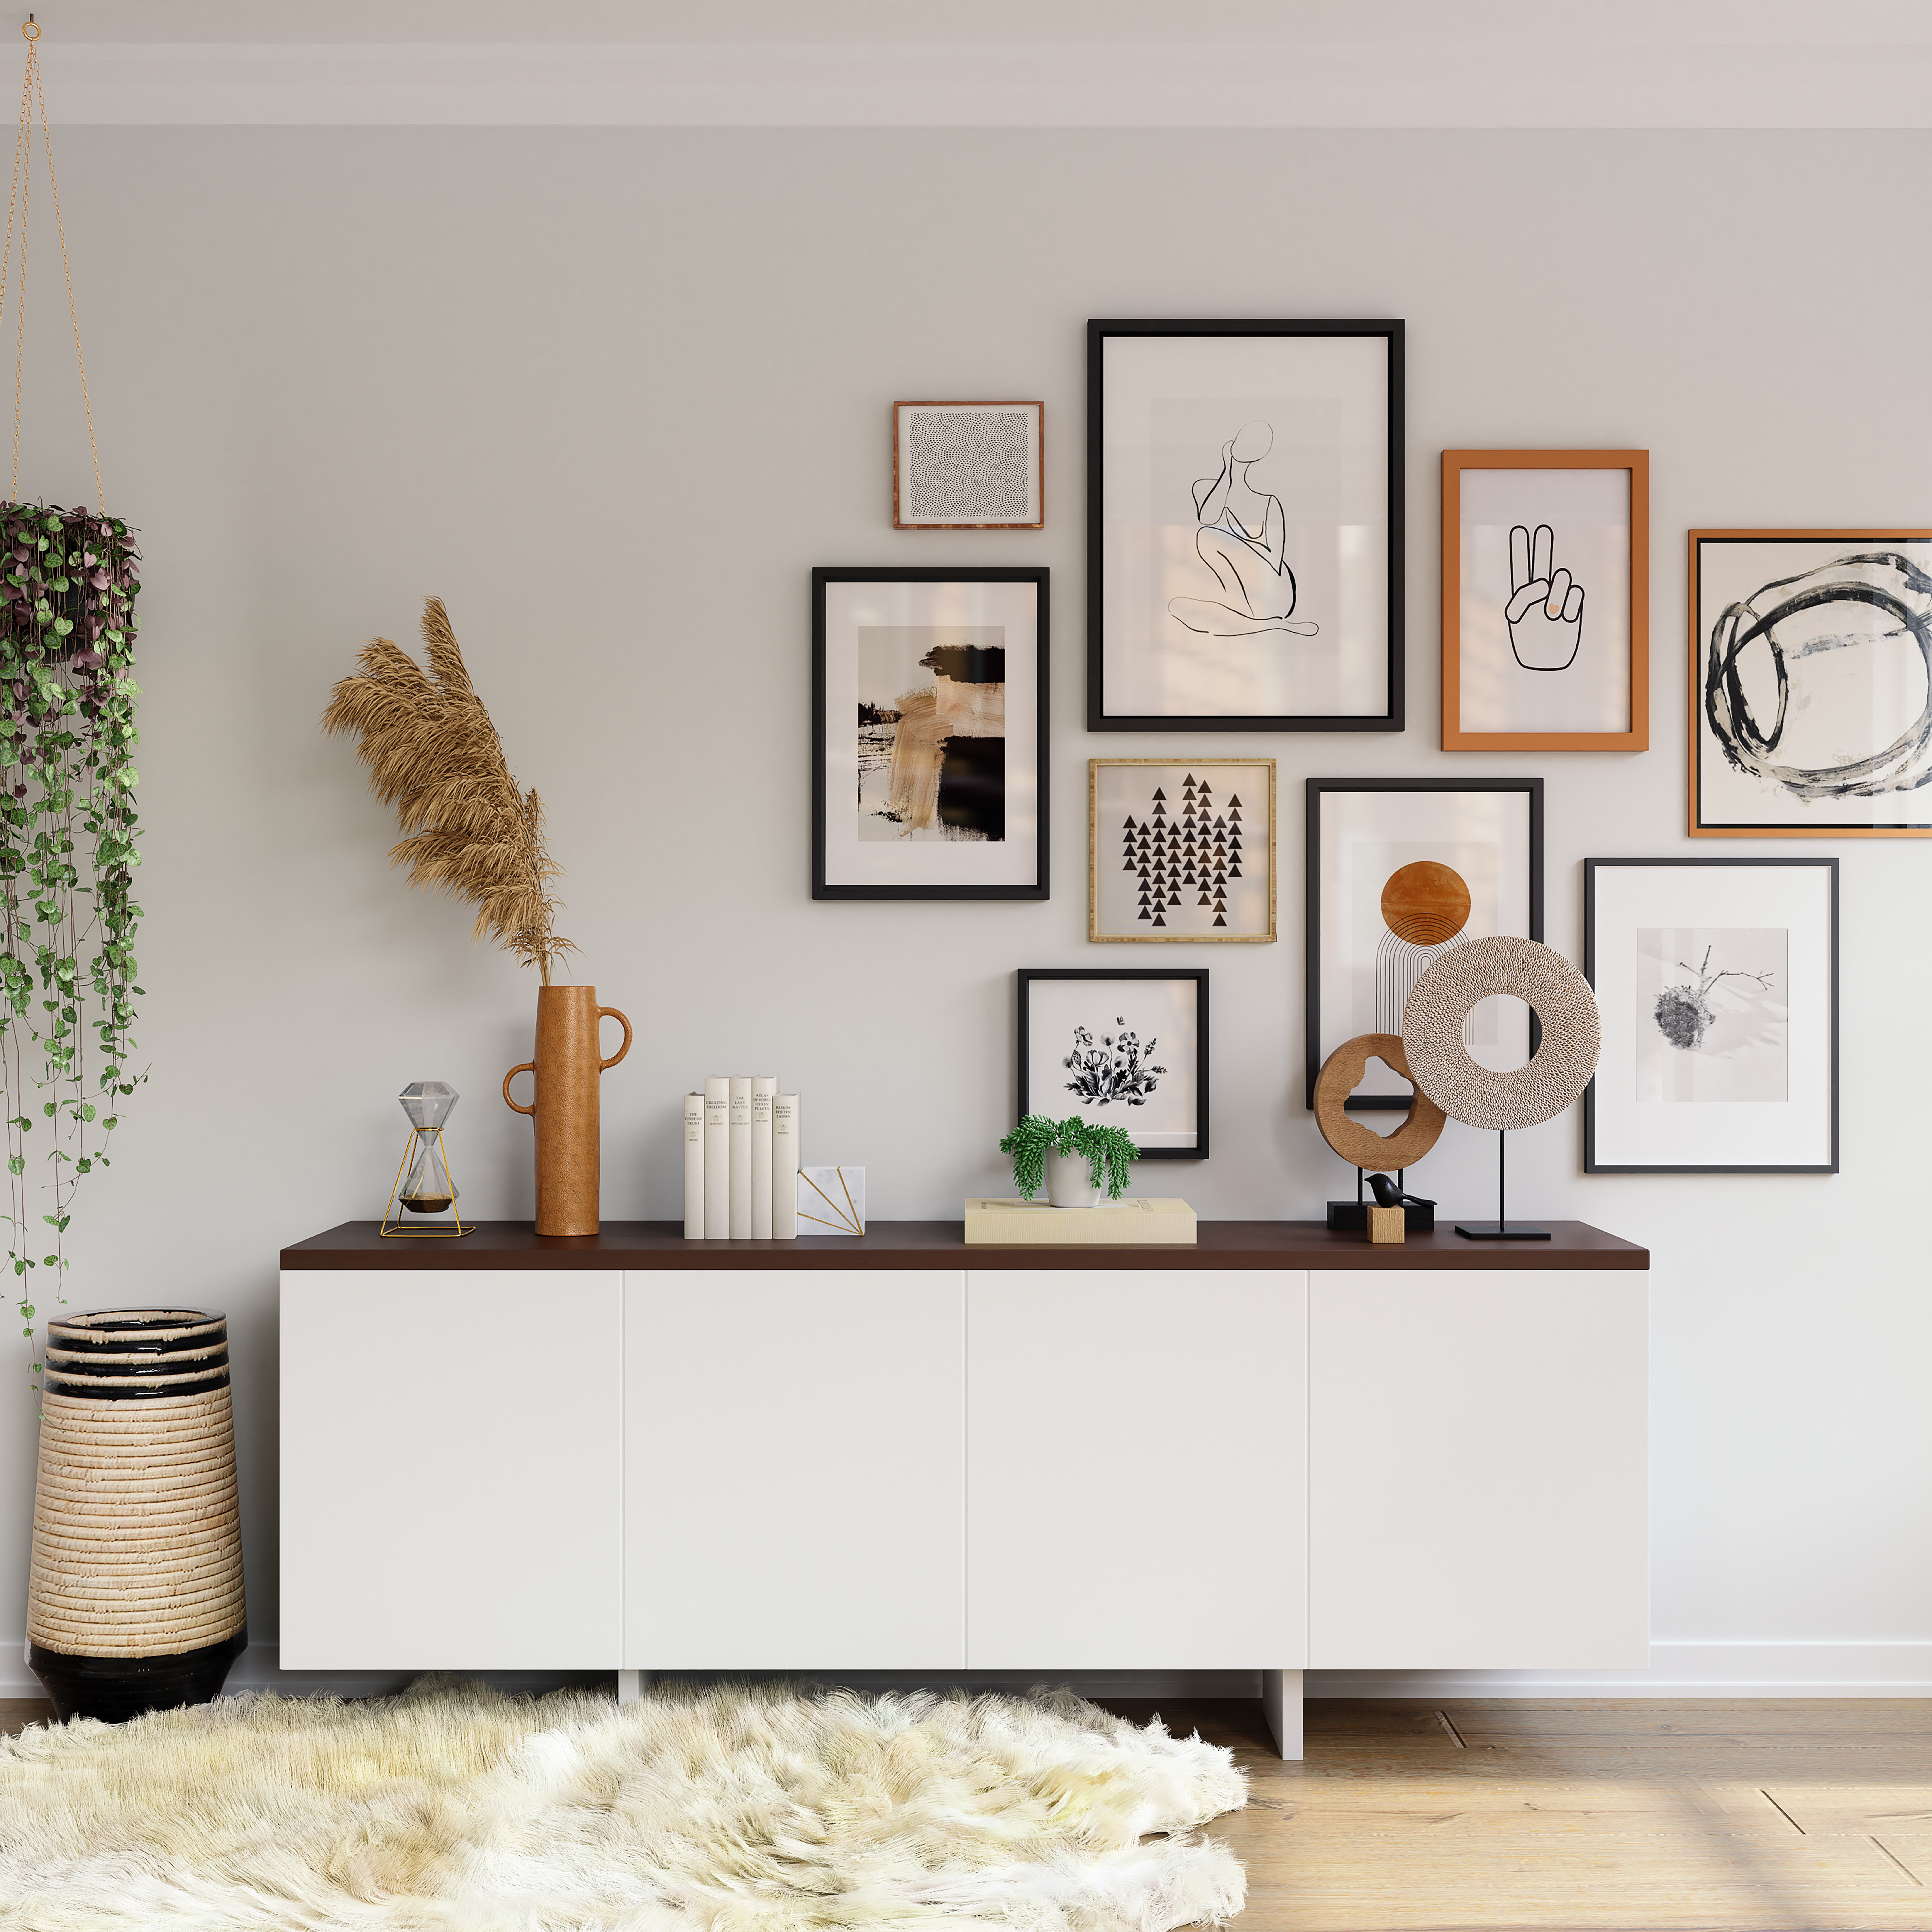 Style a sideboard with pictures, plants, accessories and lighting